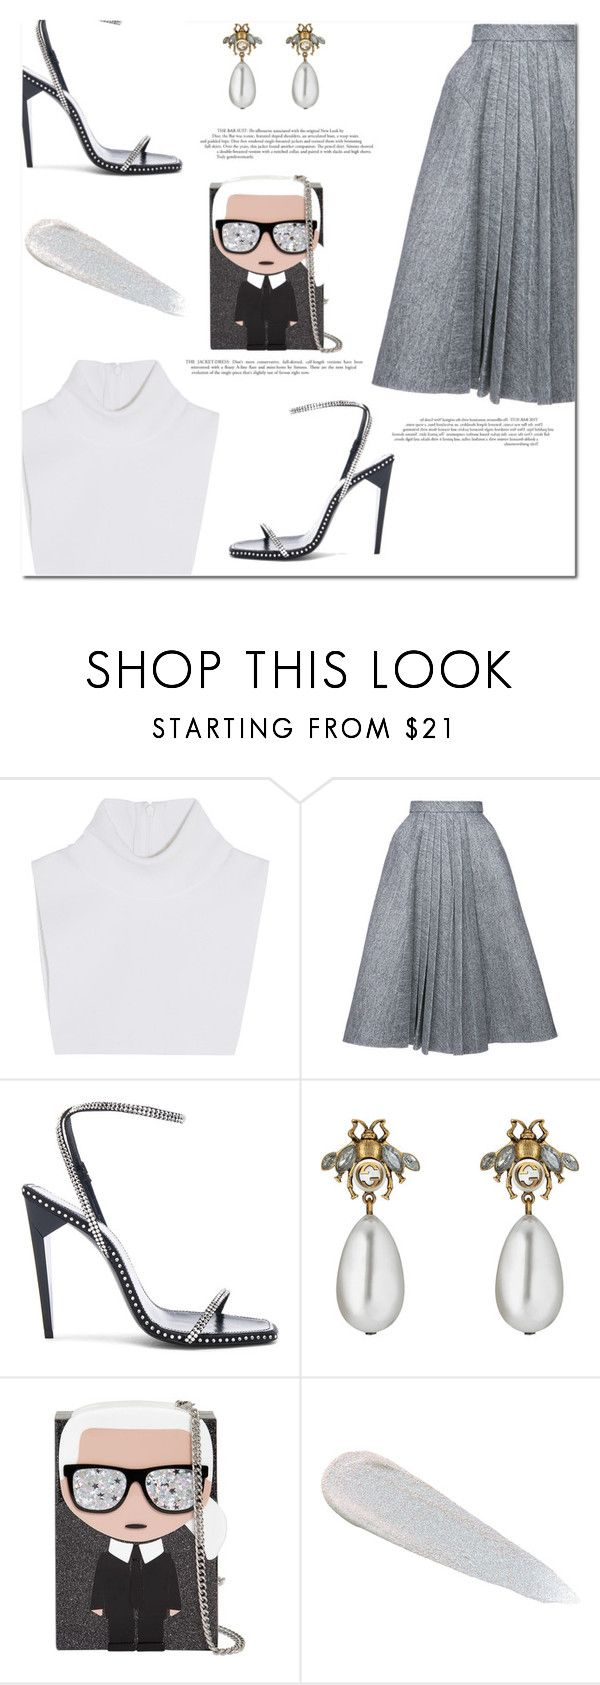 """""""Maybe"""" by marinelatadic ❤ liked on Polyvore featuring Michael Kors, Dice Kayek, Yves Saint Laurent, Gucci, Karl Lagerfeld and Urban Decay"""